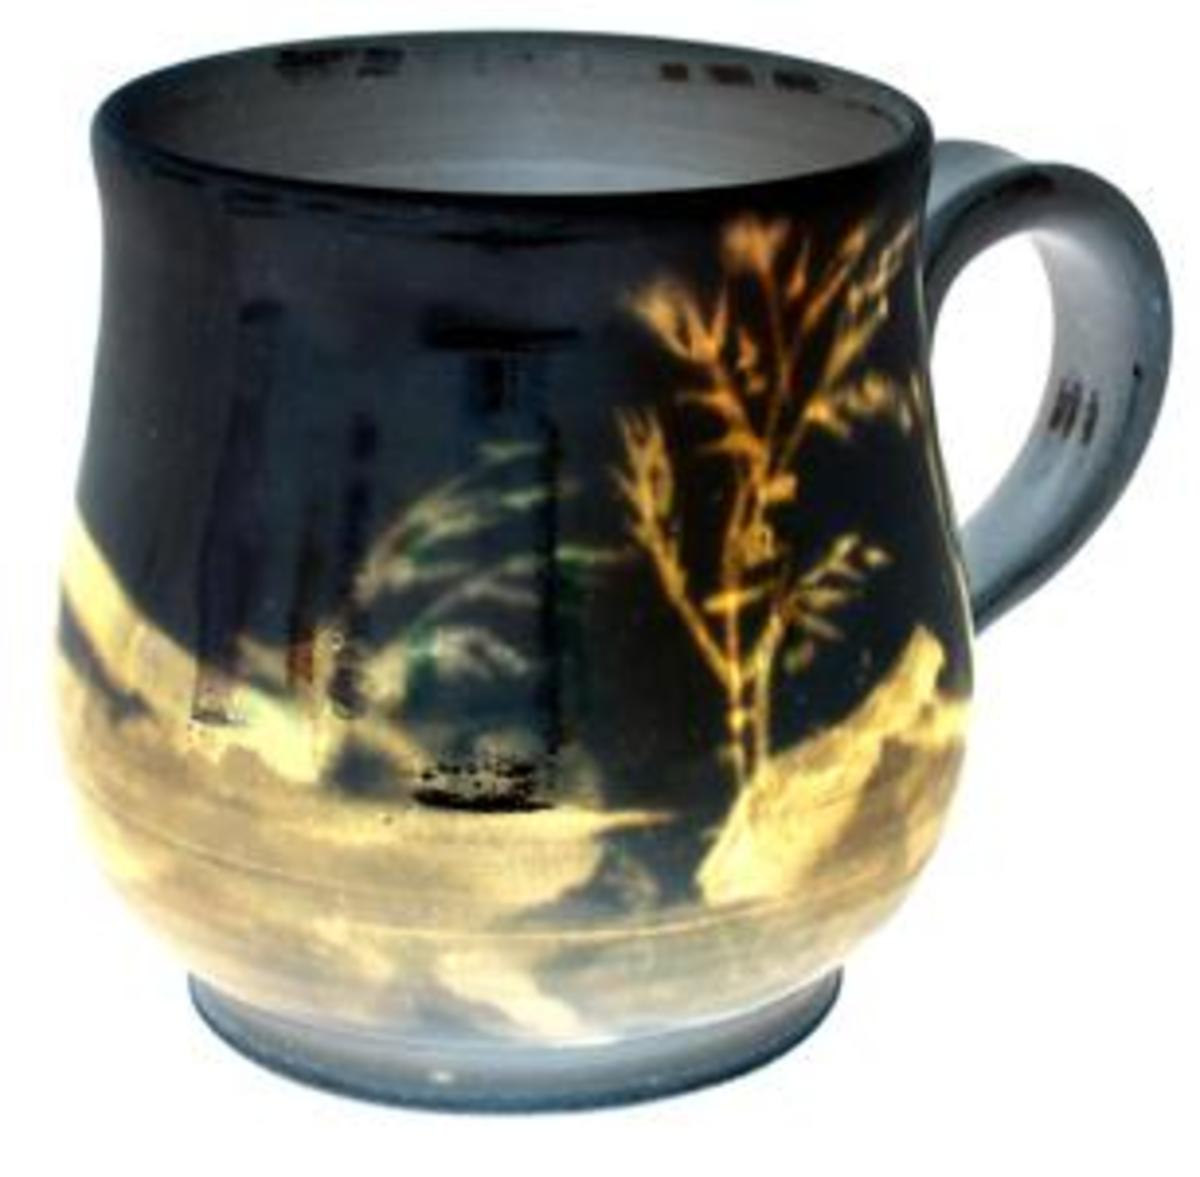 Glaze applied on Porcelain Cup - The glaze gives color and decorate the ware for a higher aesthetic value,strengthen the ware, as well as make the ware waterproof  unglazed earthenware will absorb water and bacteria can flourish in them